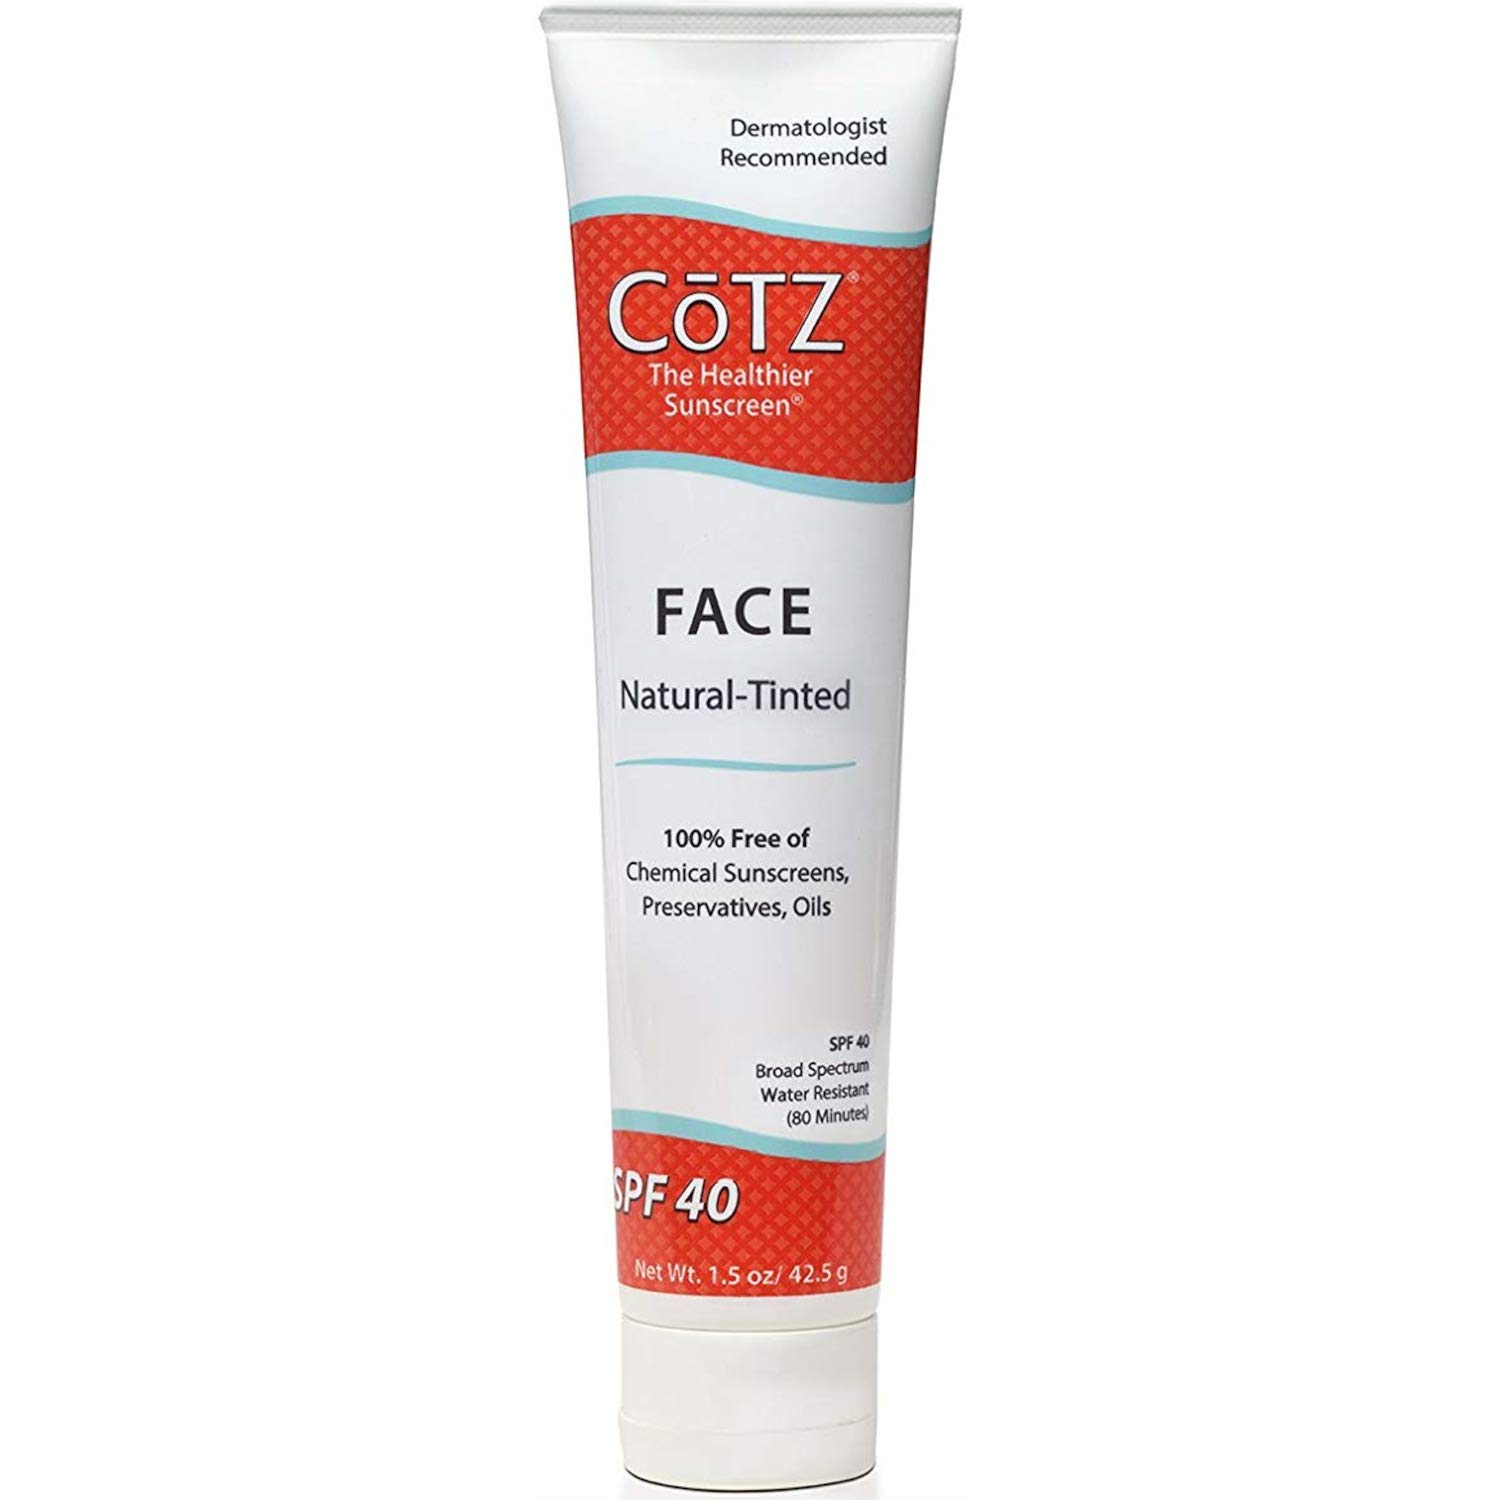 Cotz Face Natural Skin Tone SPF 40, 1.5 Ounce (Set of 2)